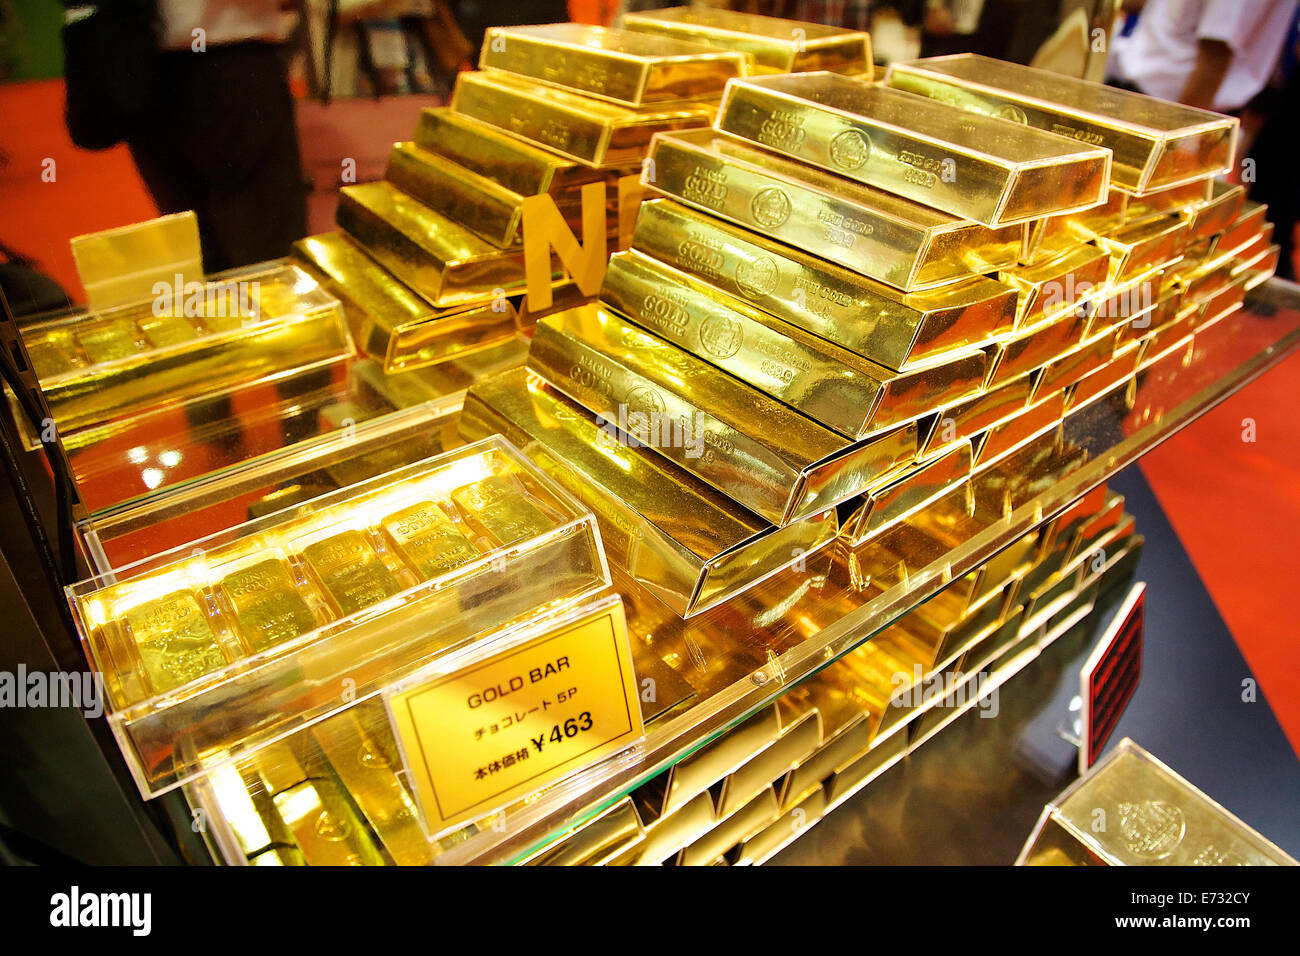 Gold bar chocolate boxes which costs 463 yen (4,40 USD) at the ...